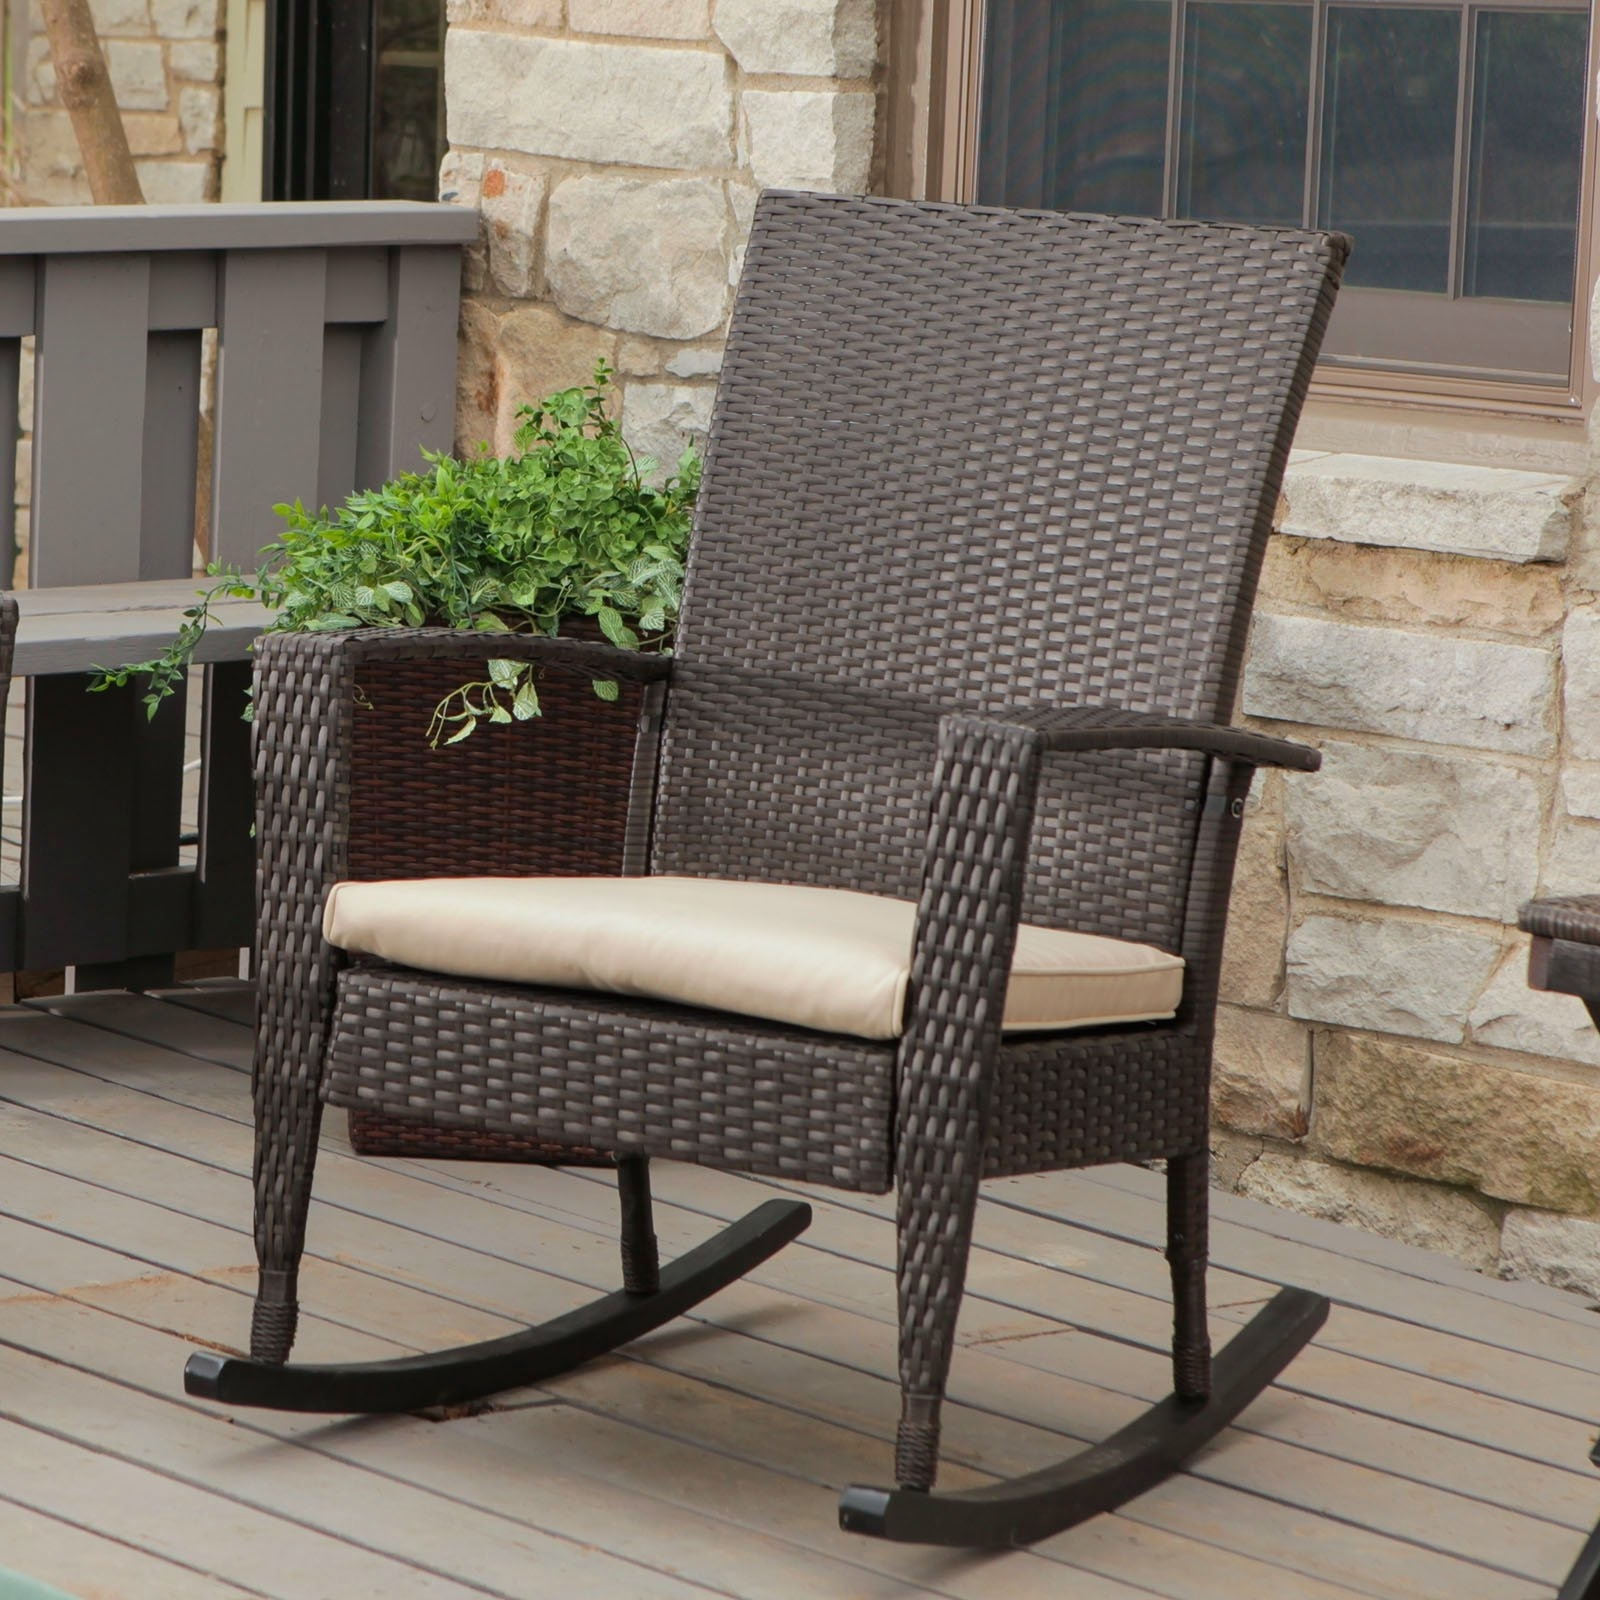 Recent Resin Patio Rocking Chairs : Spectacular And Sensational Patio Intended For White Resin Patio Rocking Chairs (View 6 of 20)